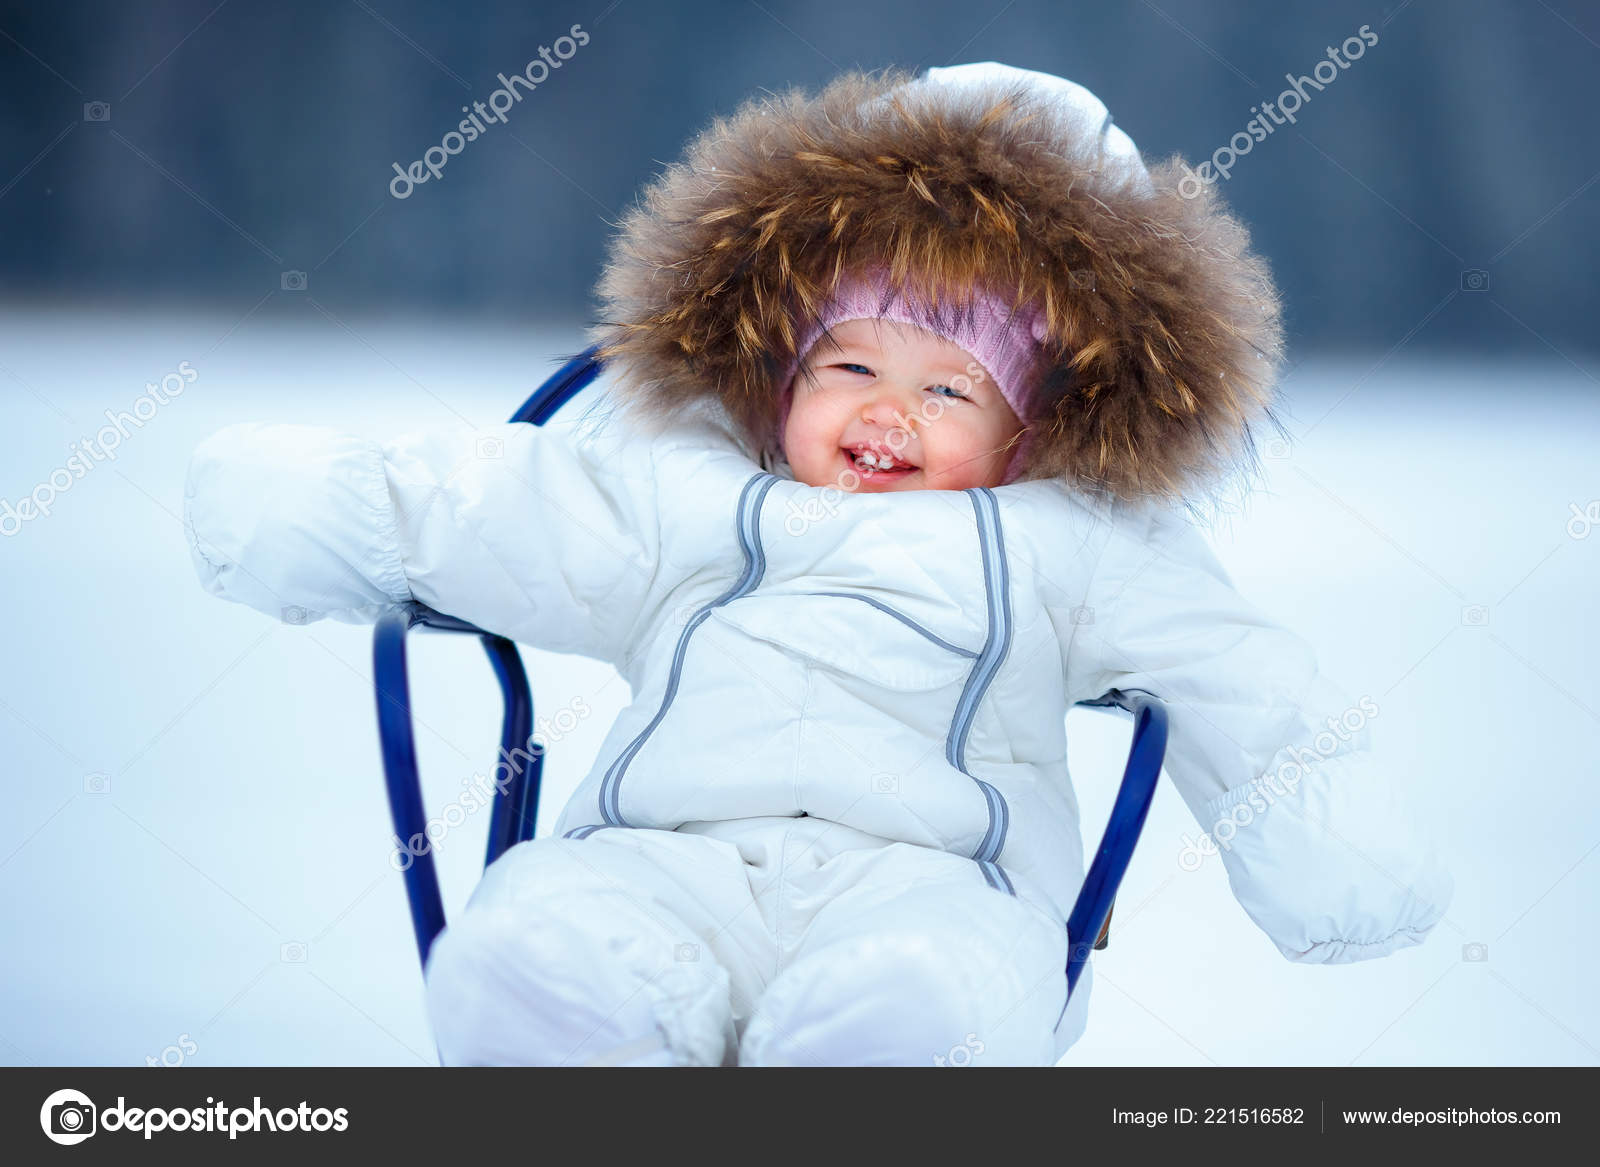 10872c4cb732 Sled and snow fun for kids. Baby sledding in snowy winter park ...